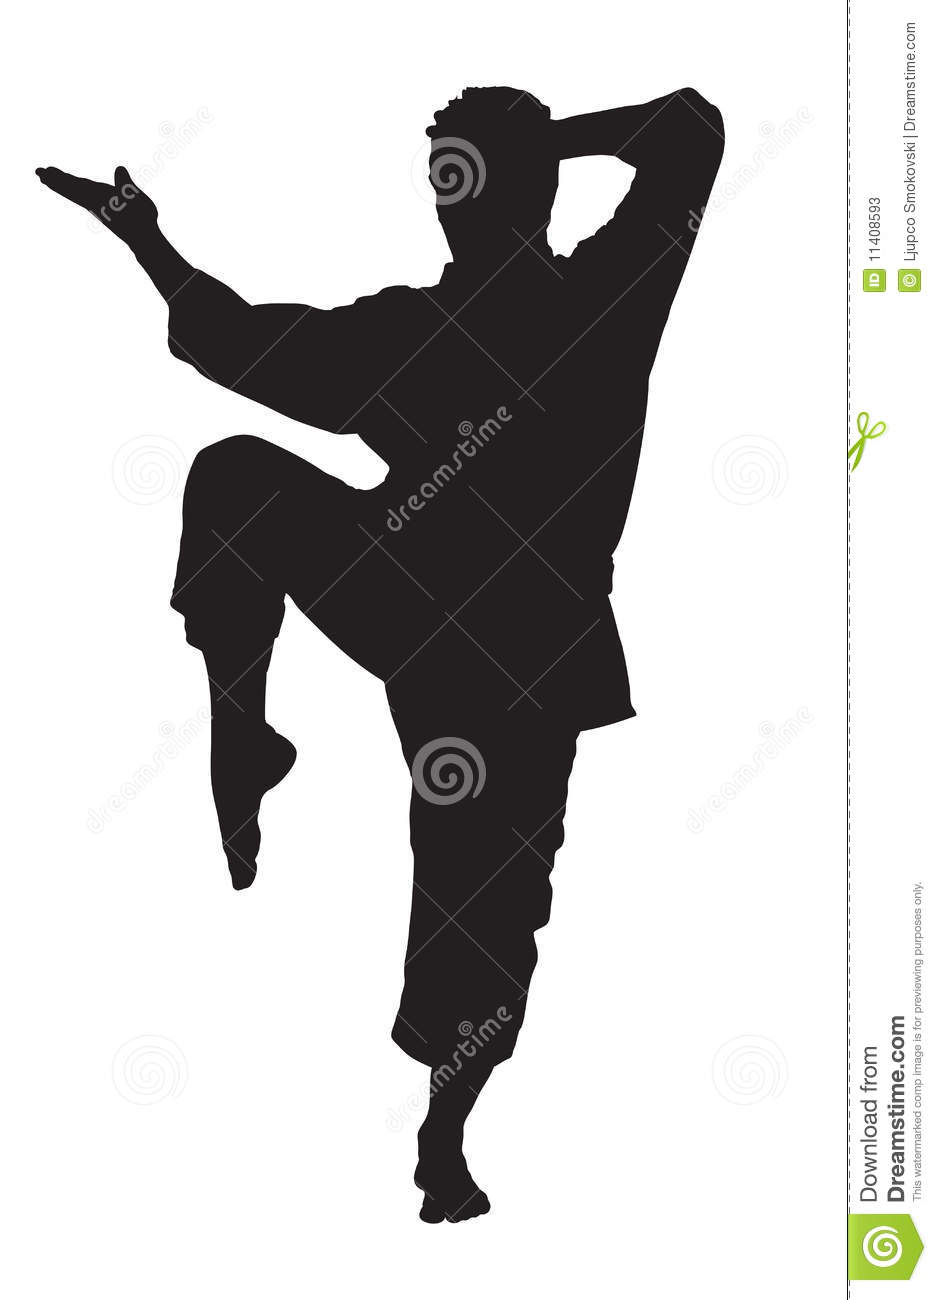 A Silhouette Of A Karate Man Stock Photos - Image: 11408593